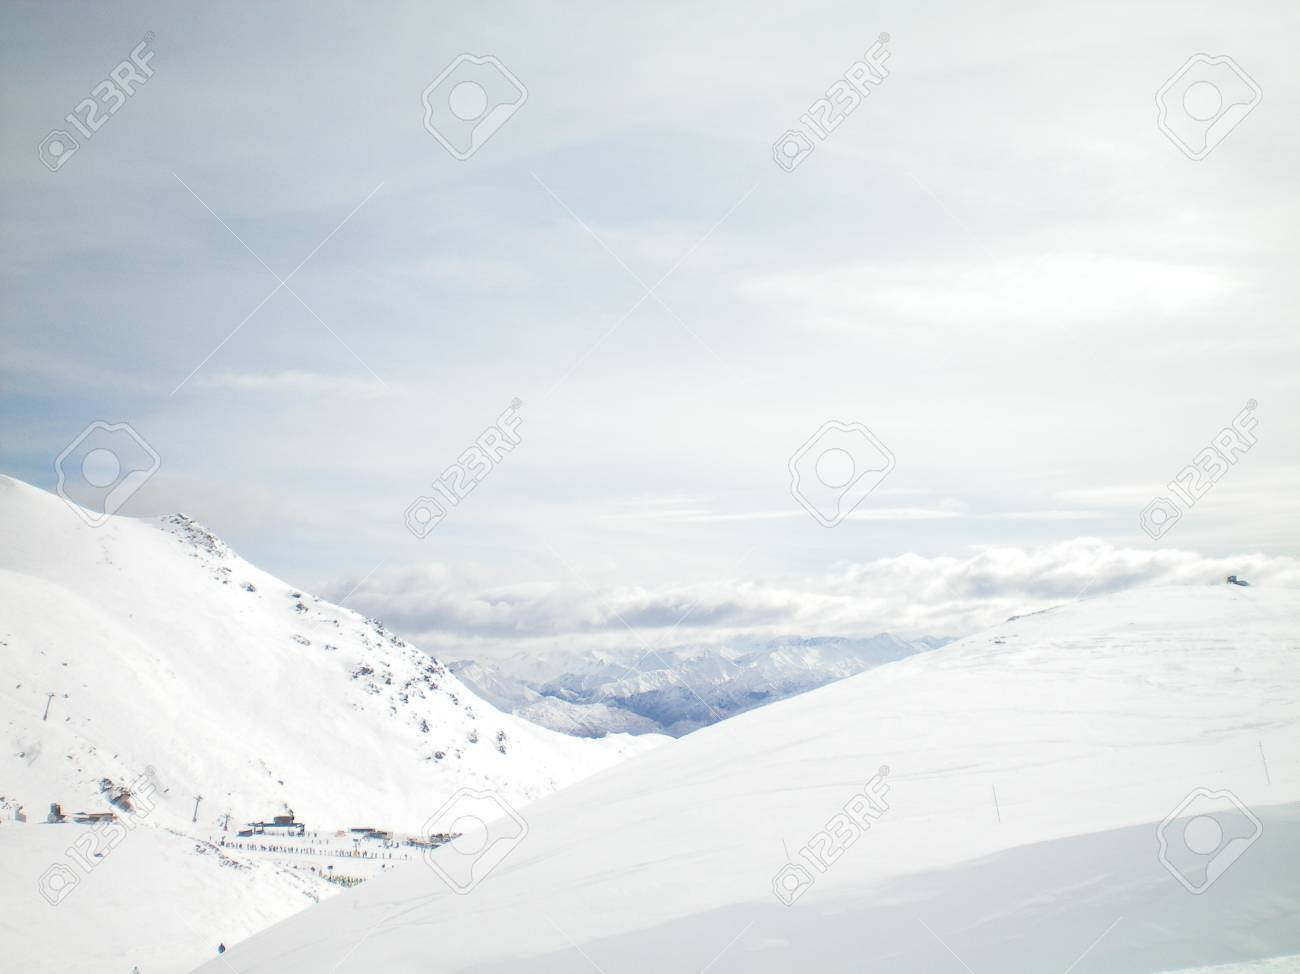 Snow covered mountains form part of a ski run. A ski resort is visible. The sky is filled with white clouds. Stock Photo - 92113027